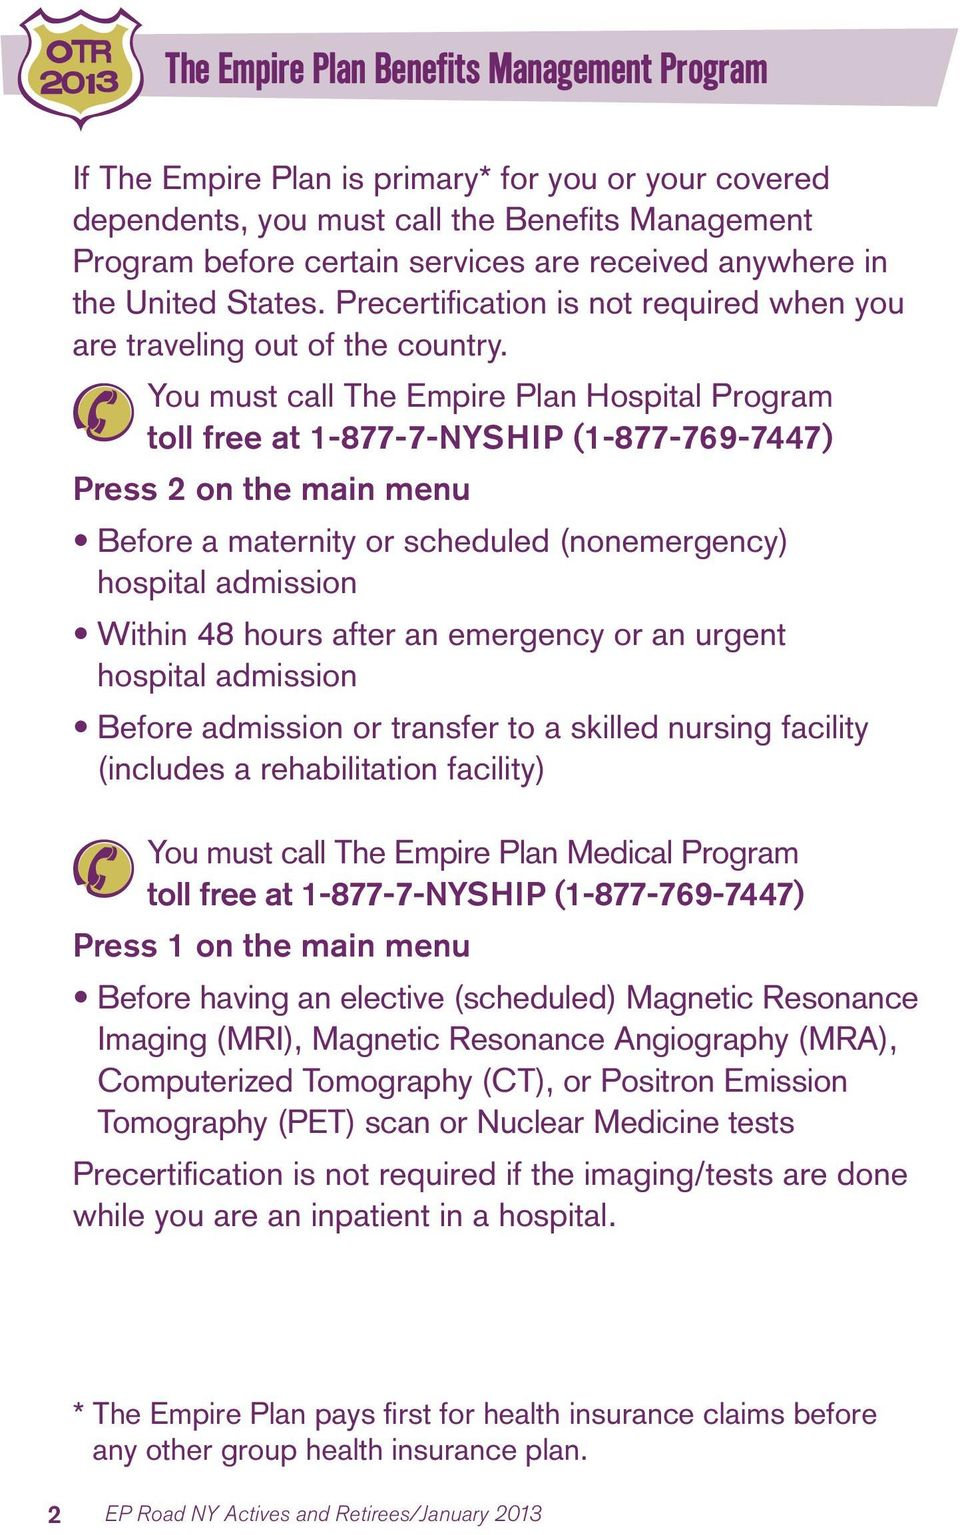 You must call The Empire Plan Hospital Program toll free at 1-877-7-NYSHIP (1-877-769-7447) Press 2 on the main menu Before a maternity or scheduled (nonemergency) hospital admission Within 48 hours